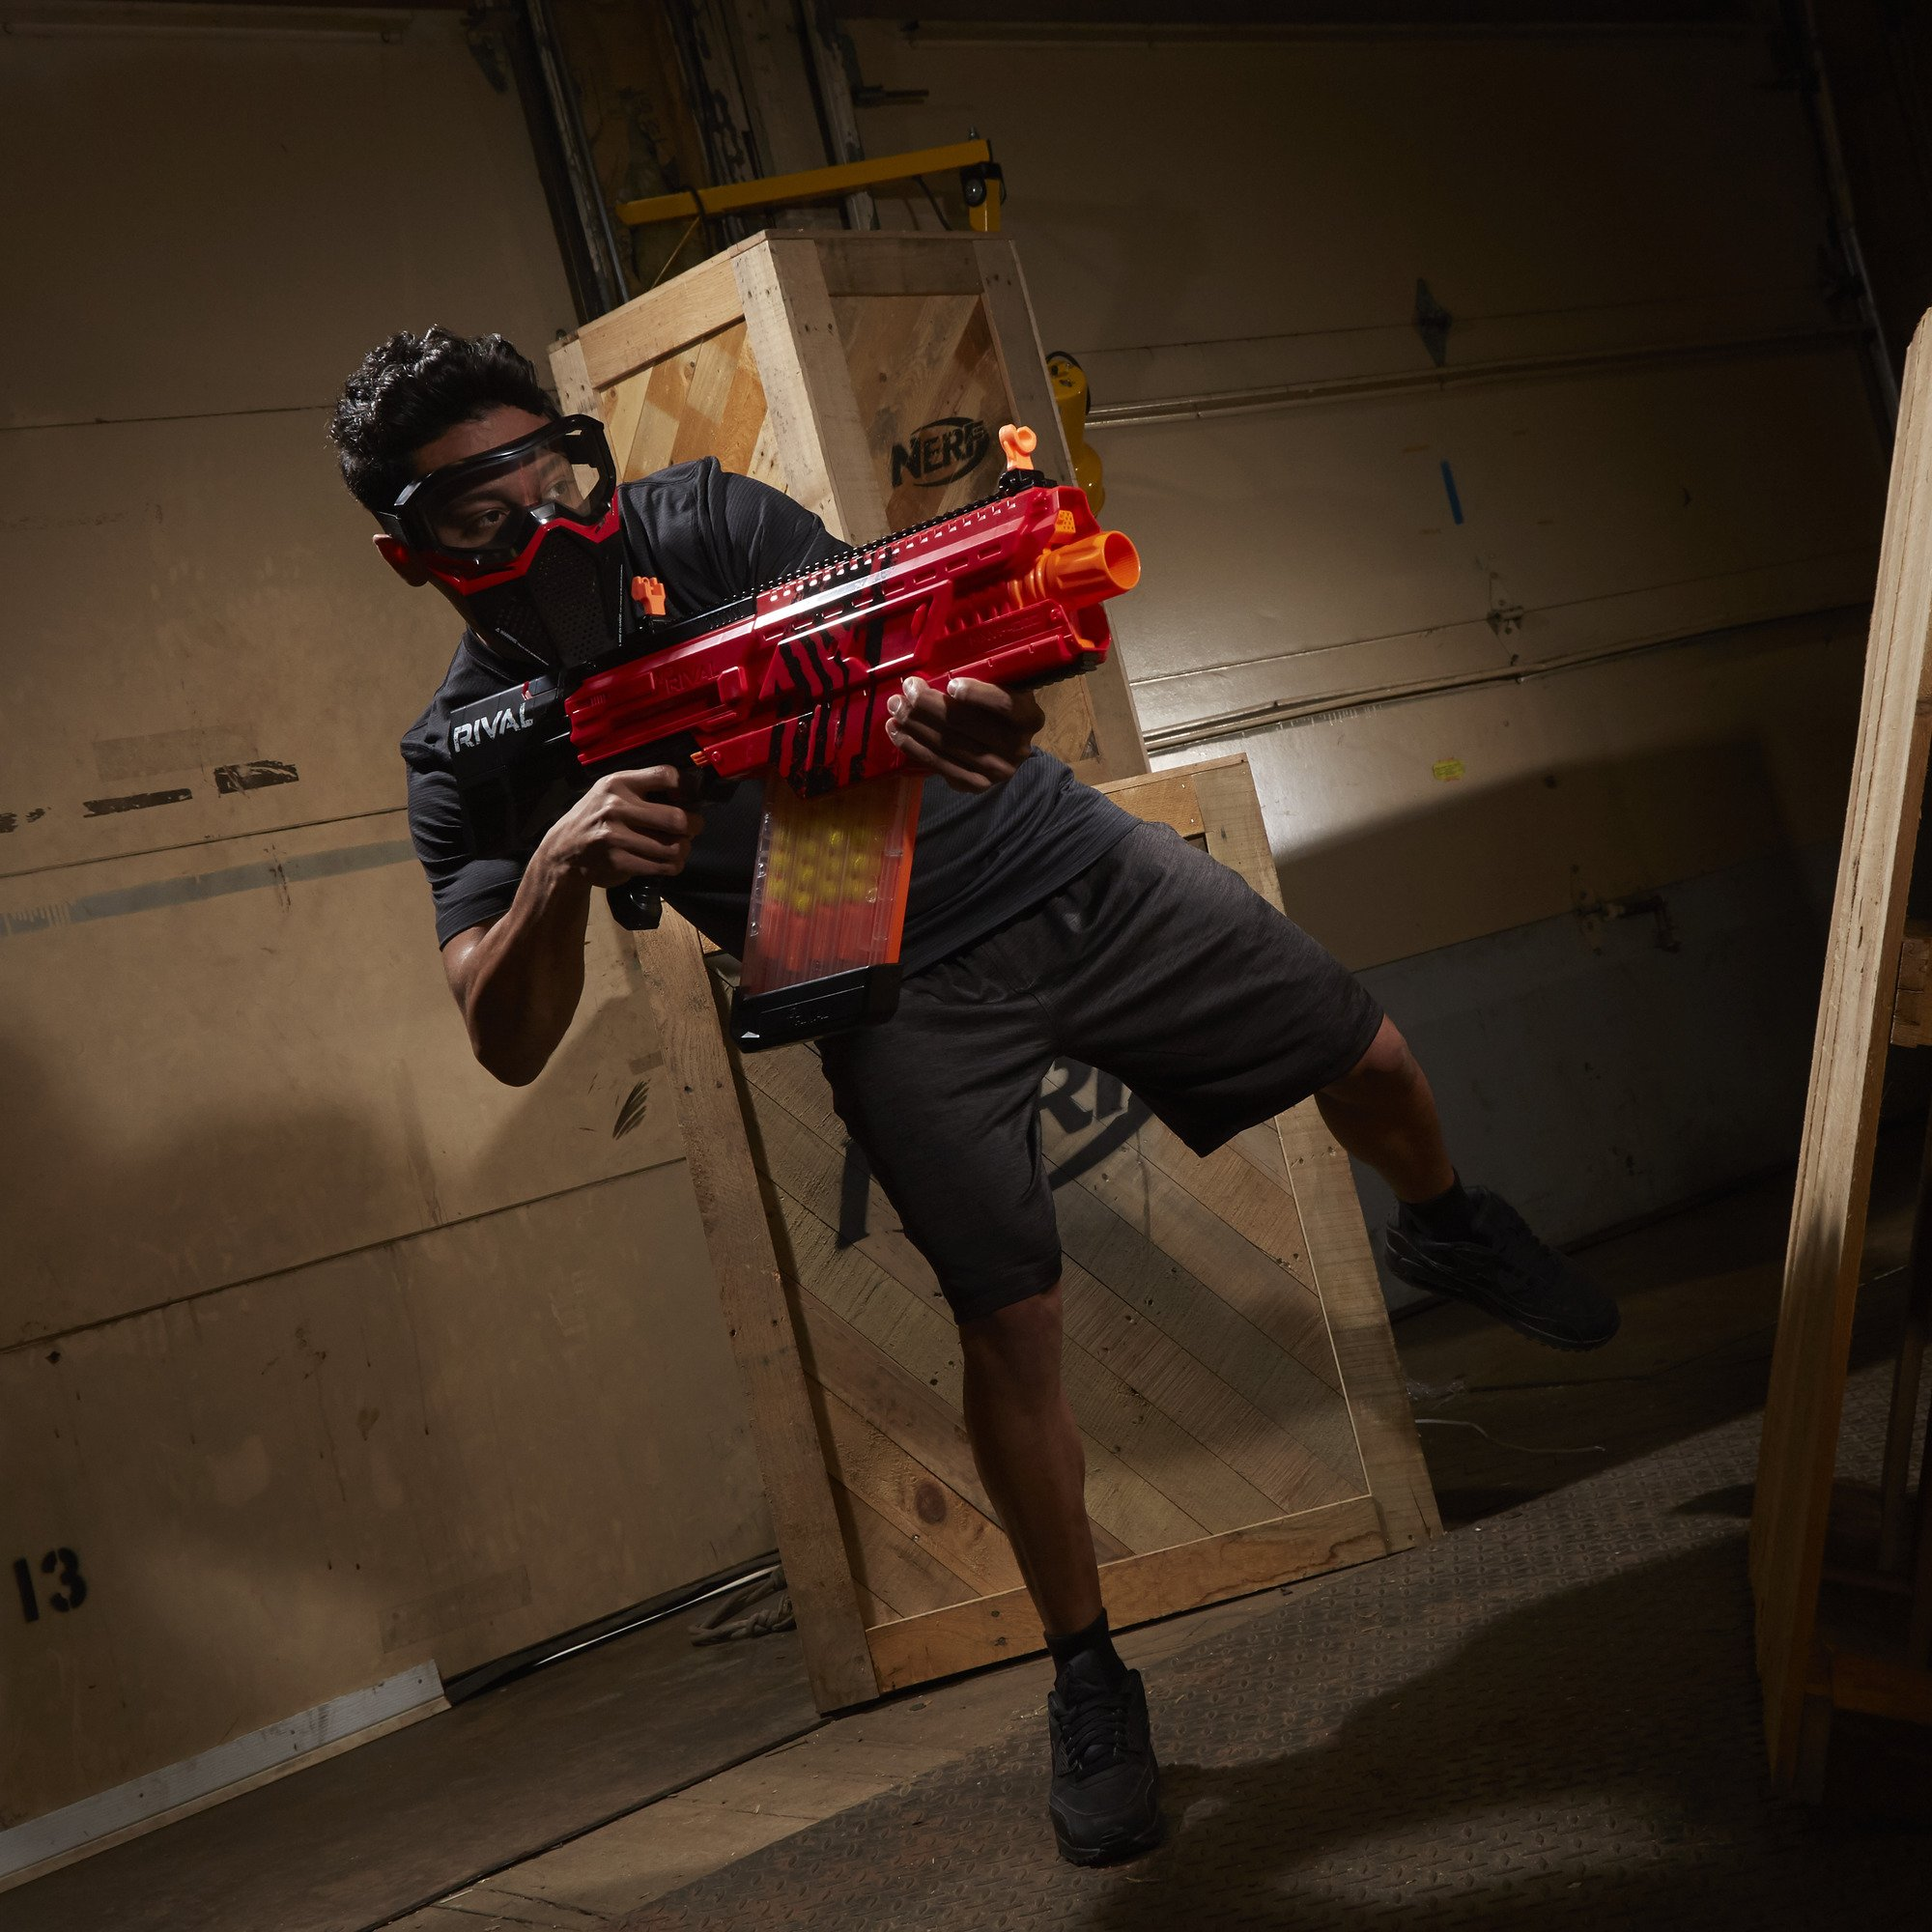 Nerf Rival Khaos MXVI-4000 Blaster (Red) by NERF (Image #14)